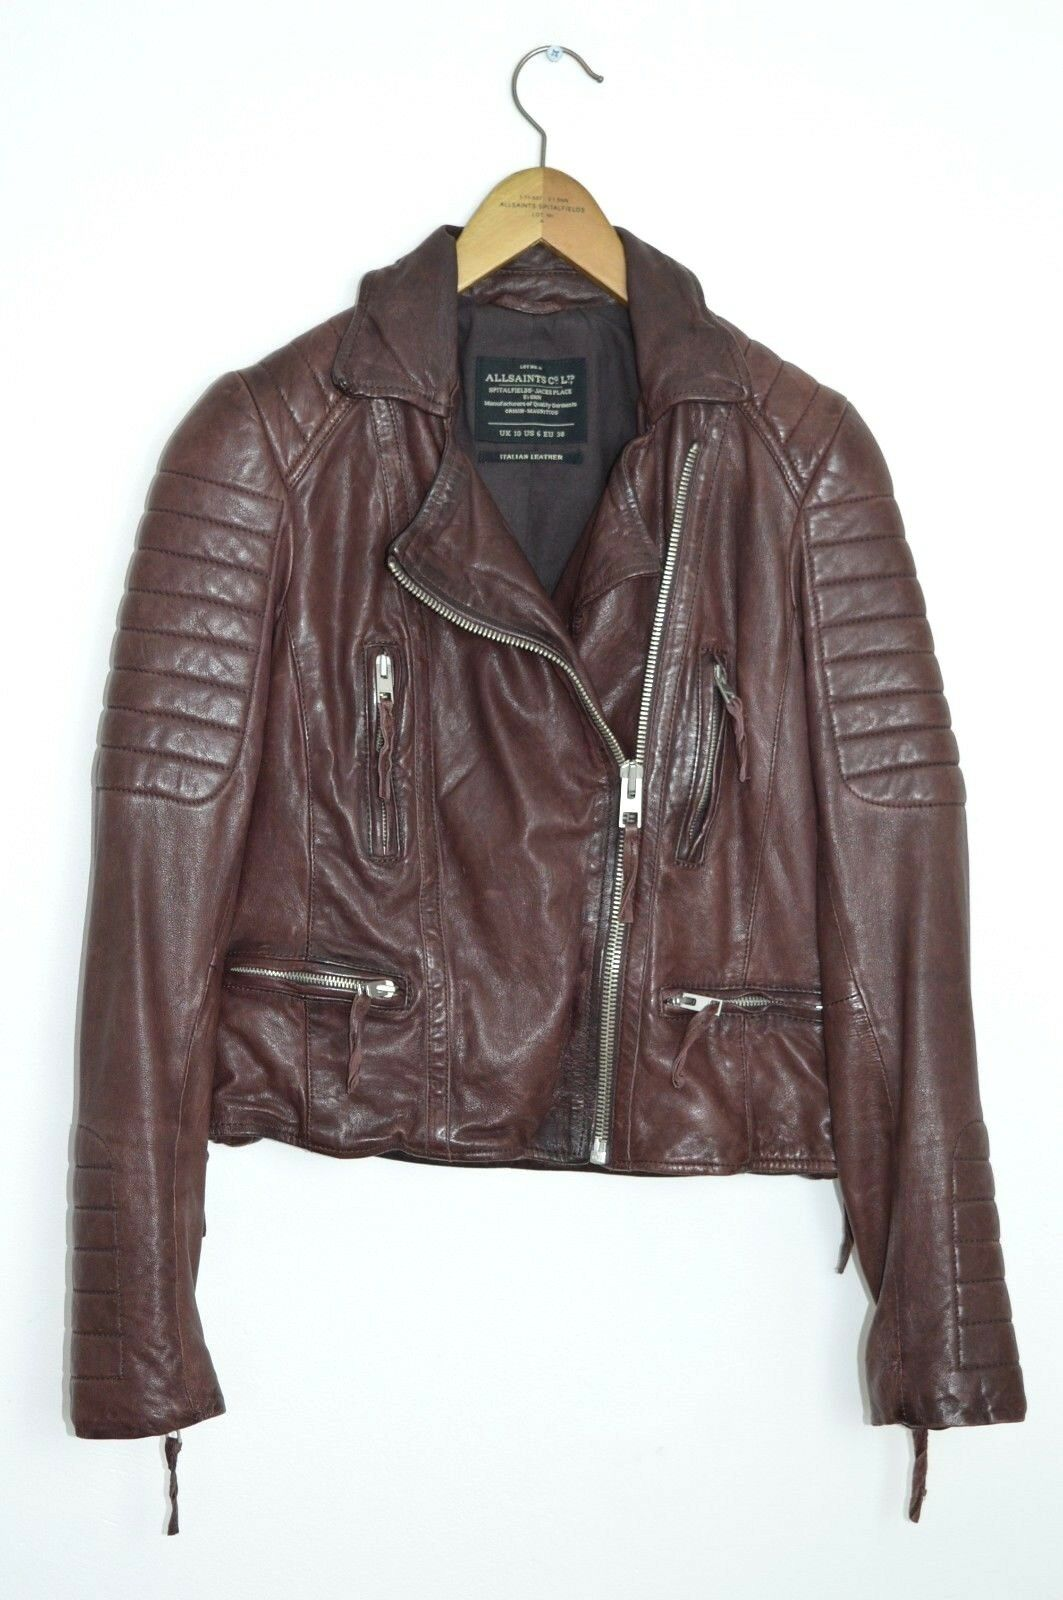 *STUNNING* AllSaints Ladies OXBLOOD Leather Biker Jacket UK10 US6 steine moto B